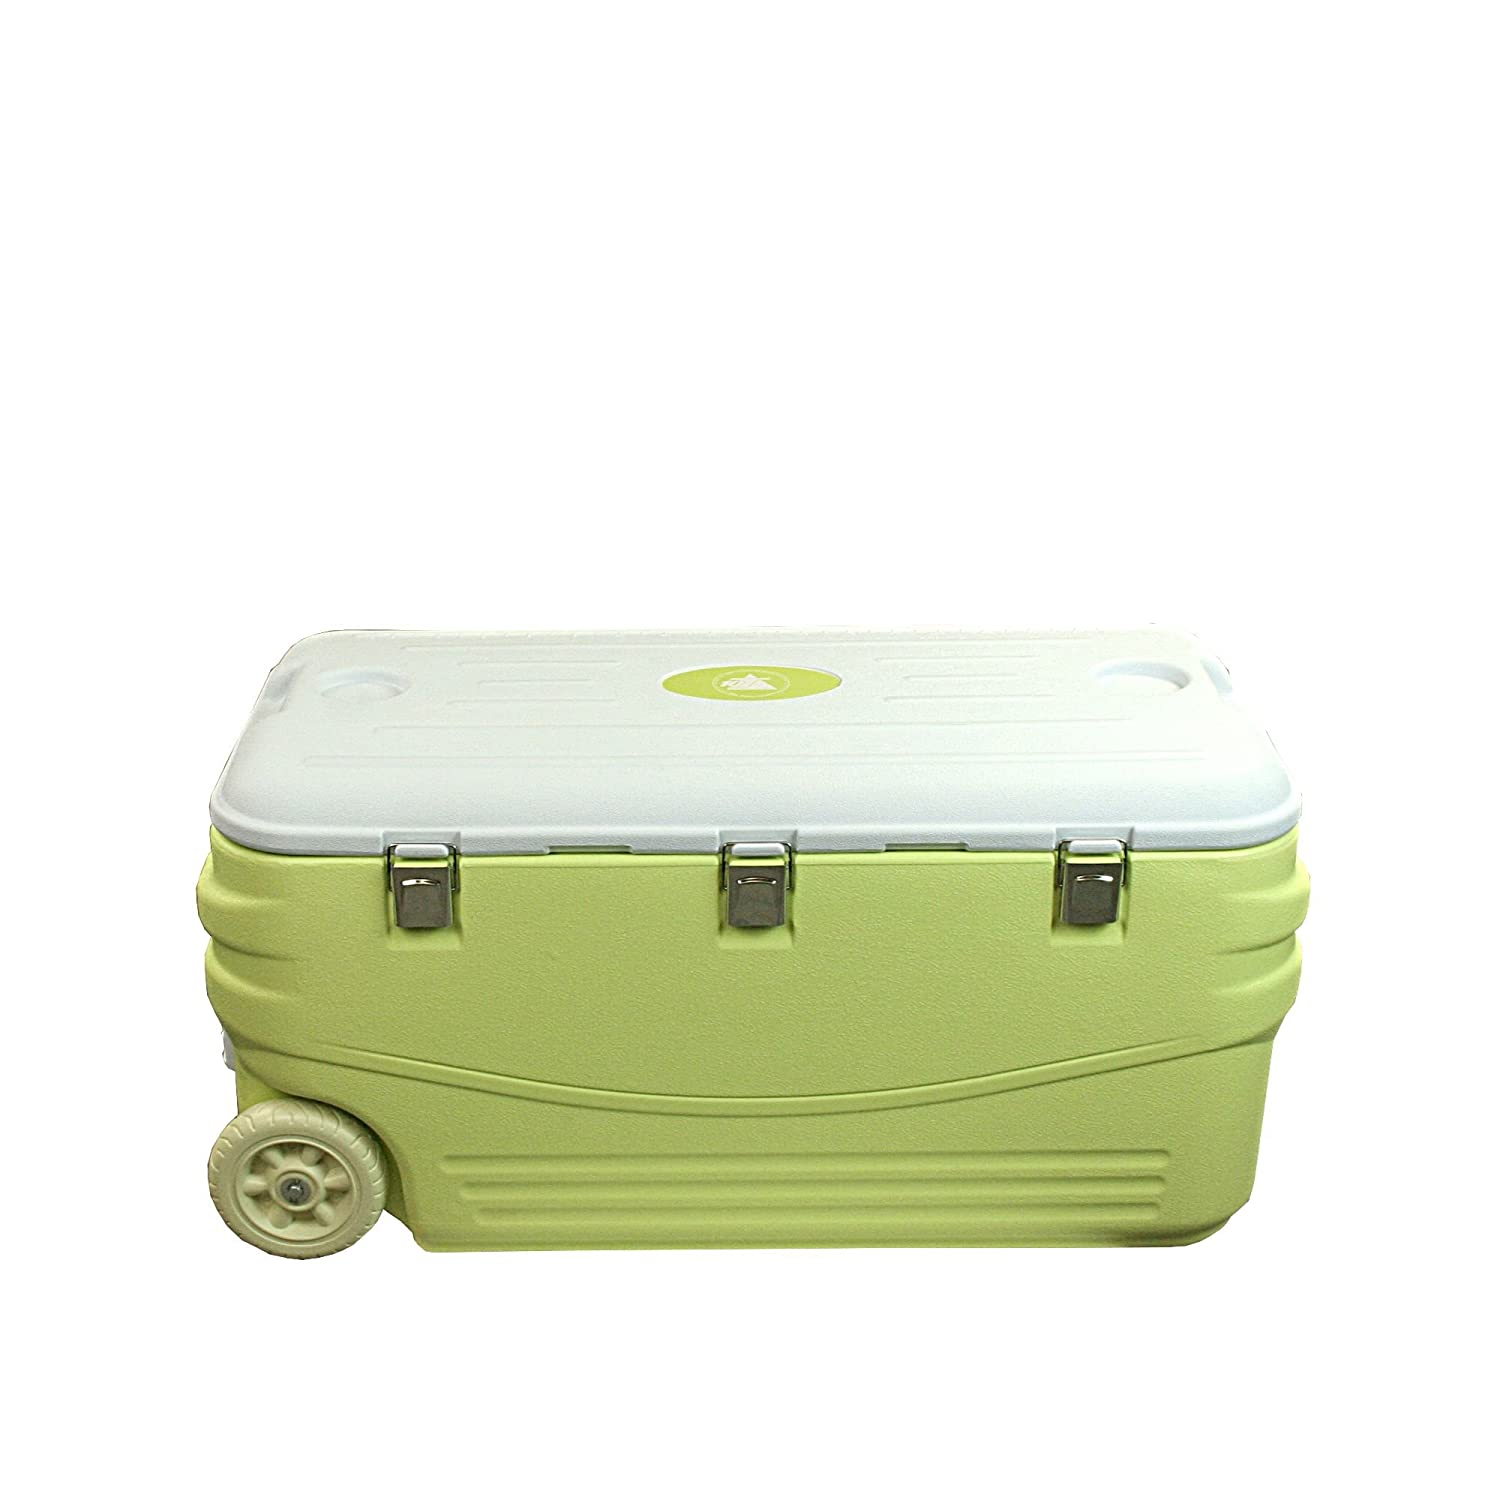 10T Outdoor Equipment Fridgo 100 - Nevera para acampada, color verde claro, talla 100 l: Amazon.es: Deportes y aire libre